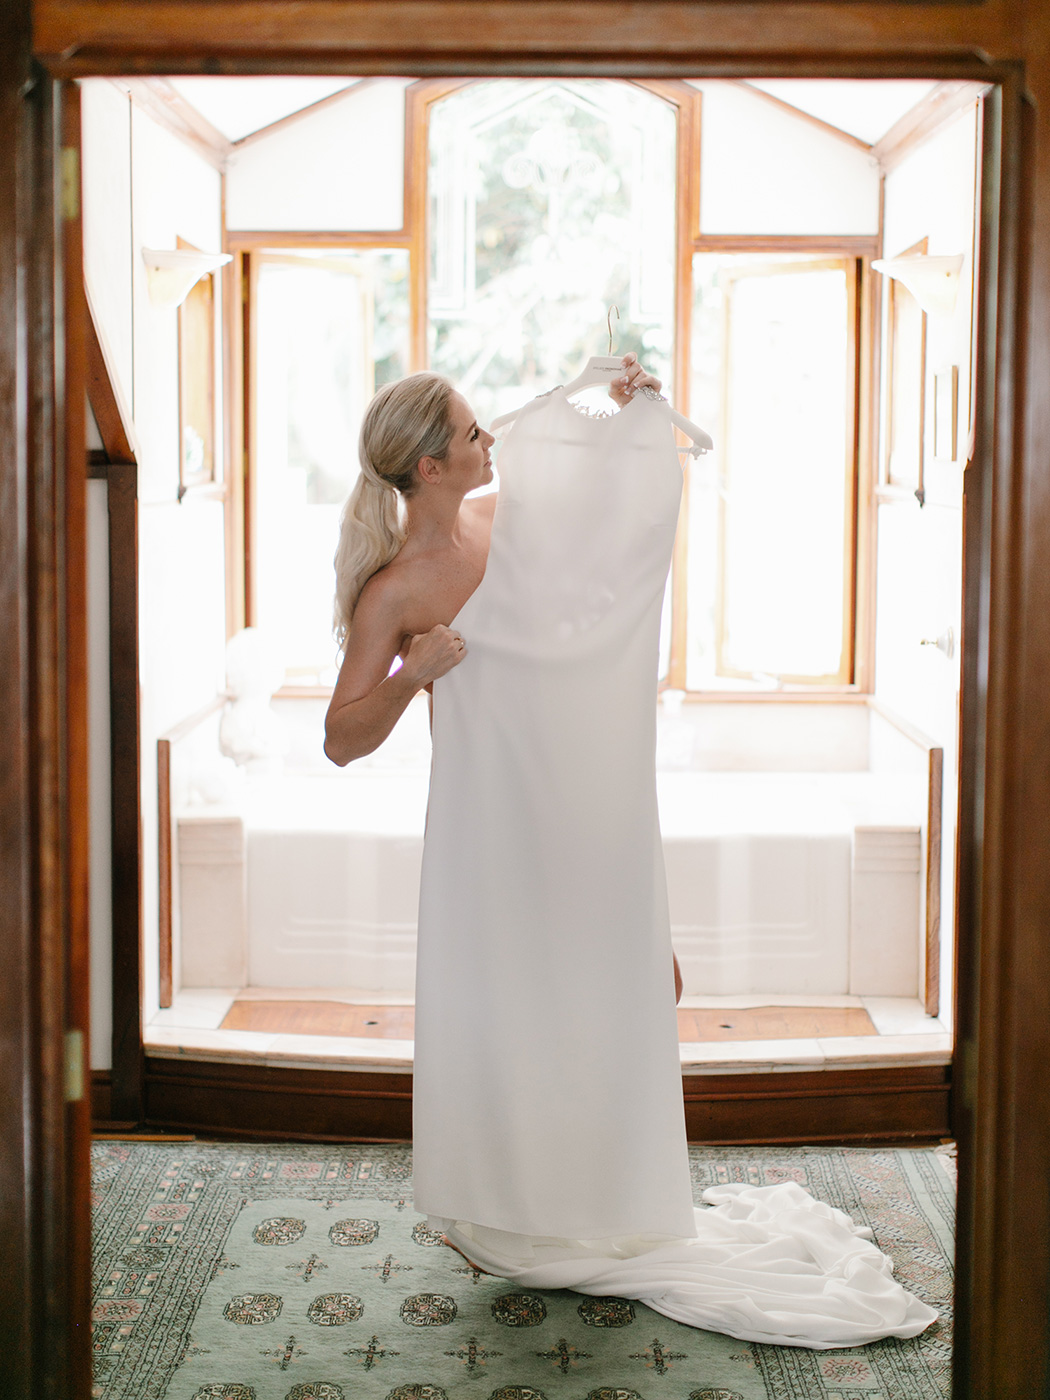 Bride Getting Ready | Rensche Mari Photography